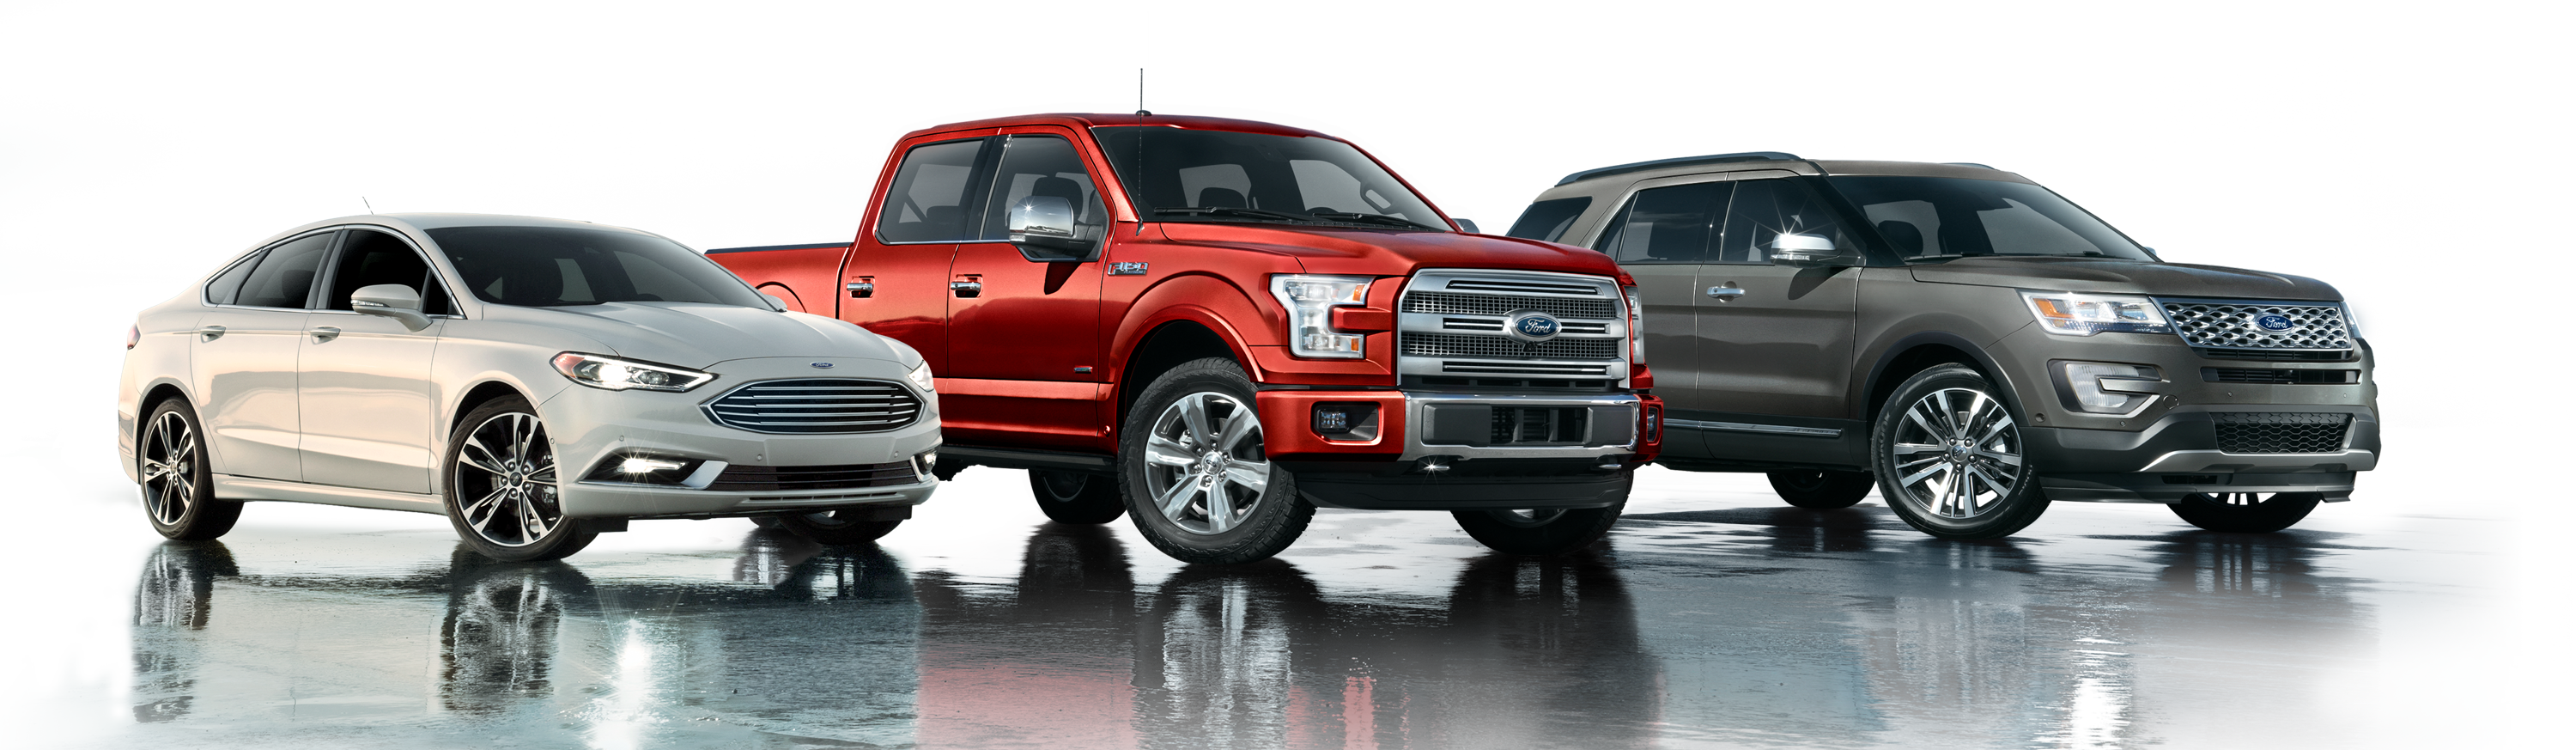 New ford cars trucks suvs at best ford lincoln